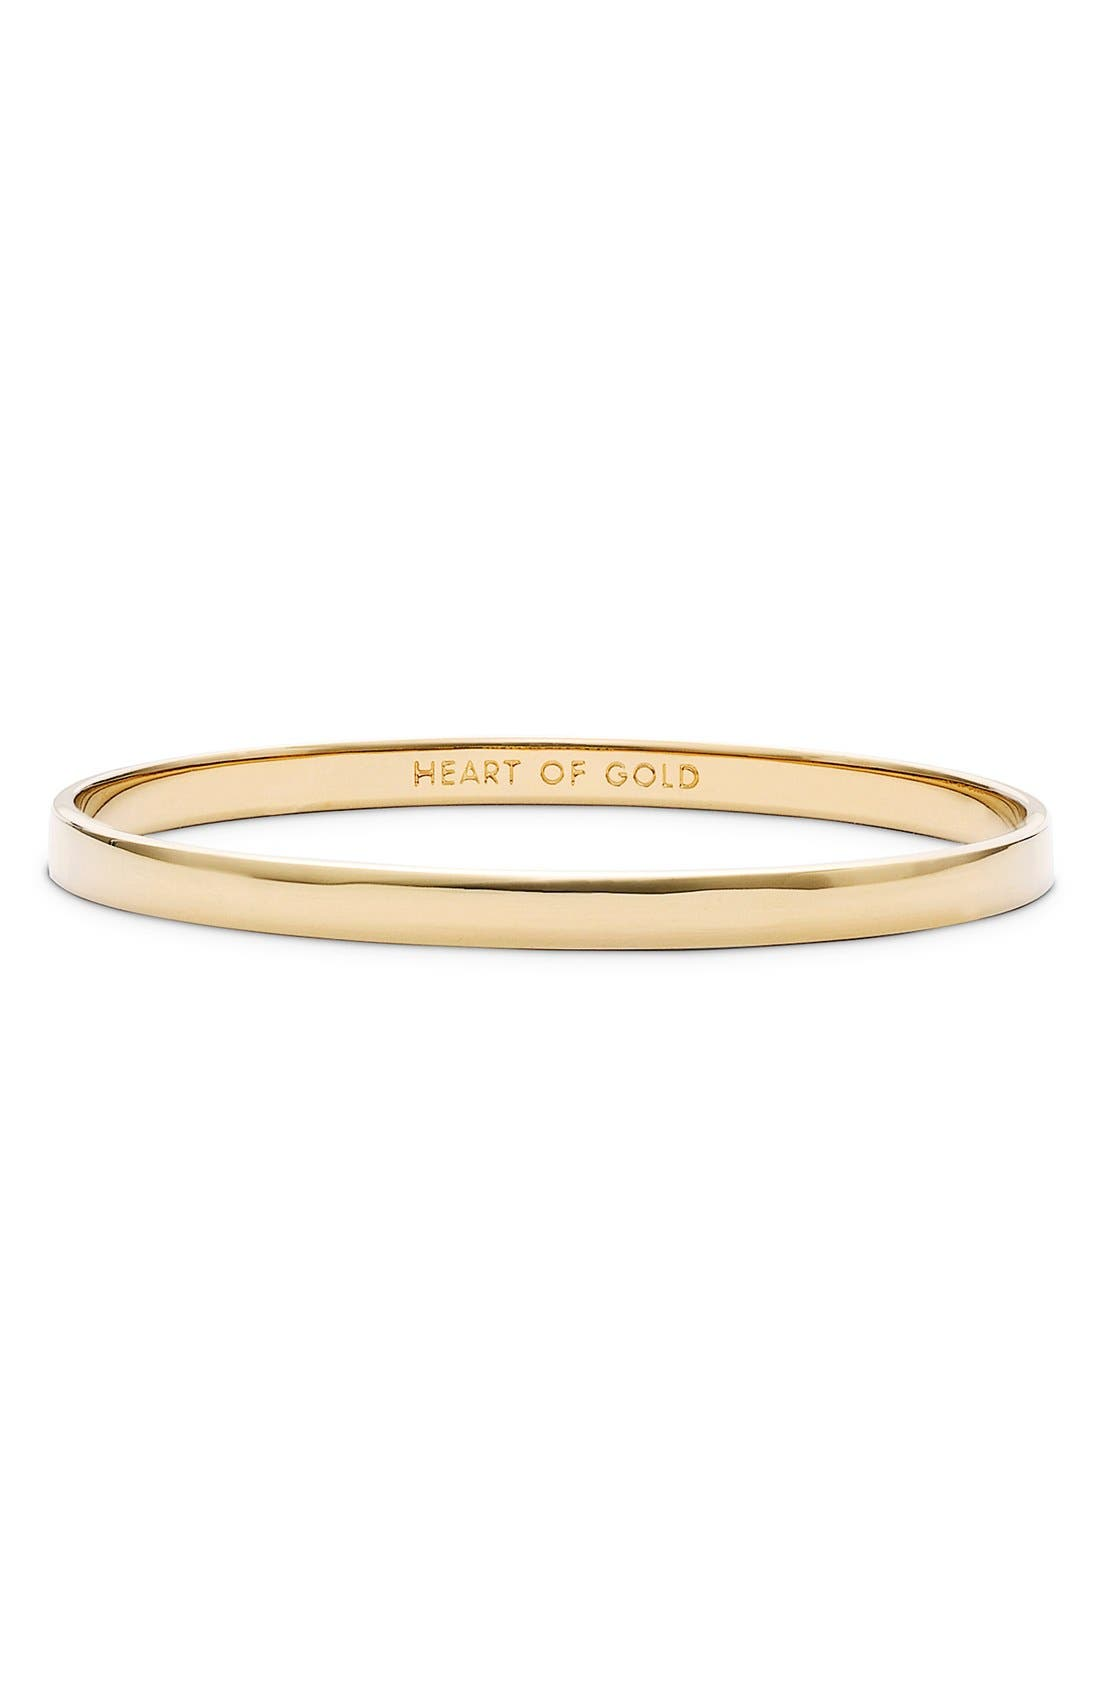 'idiom - heart of gold' bangle,                         Main,                         color, GOLD